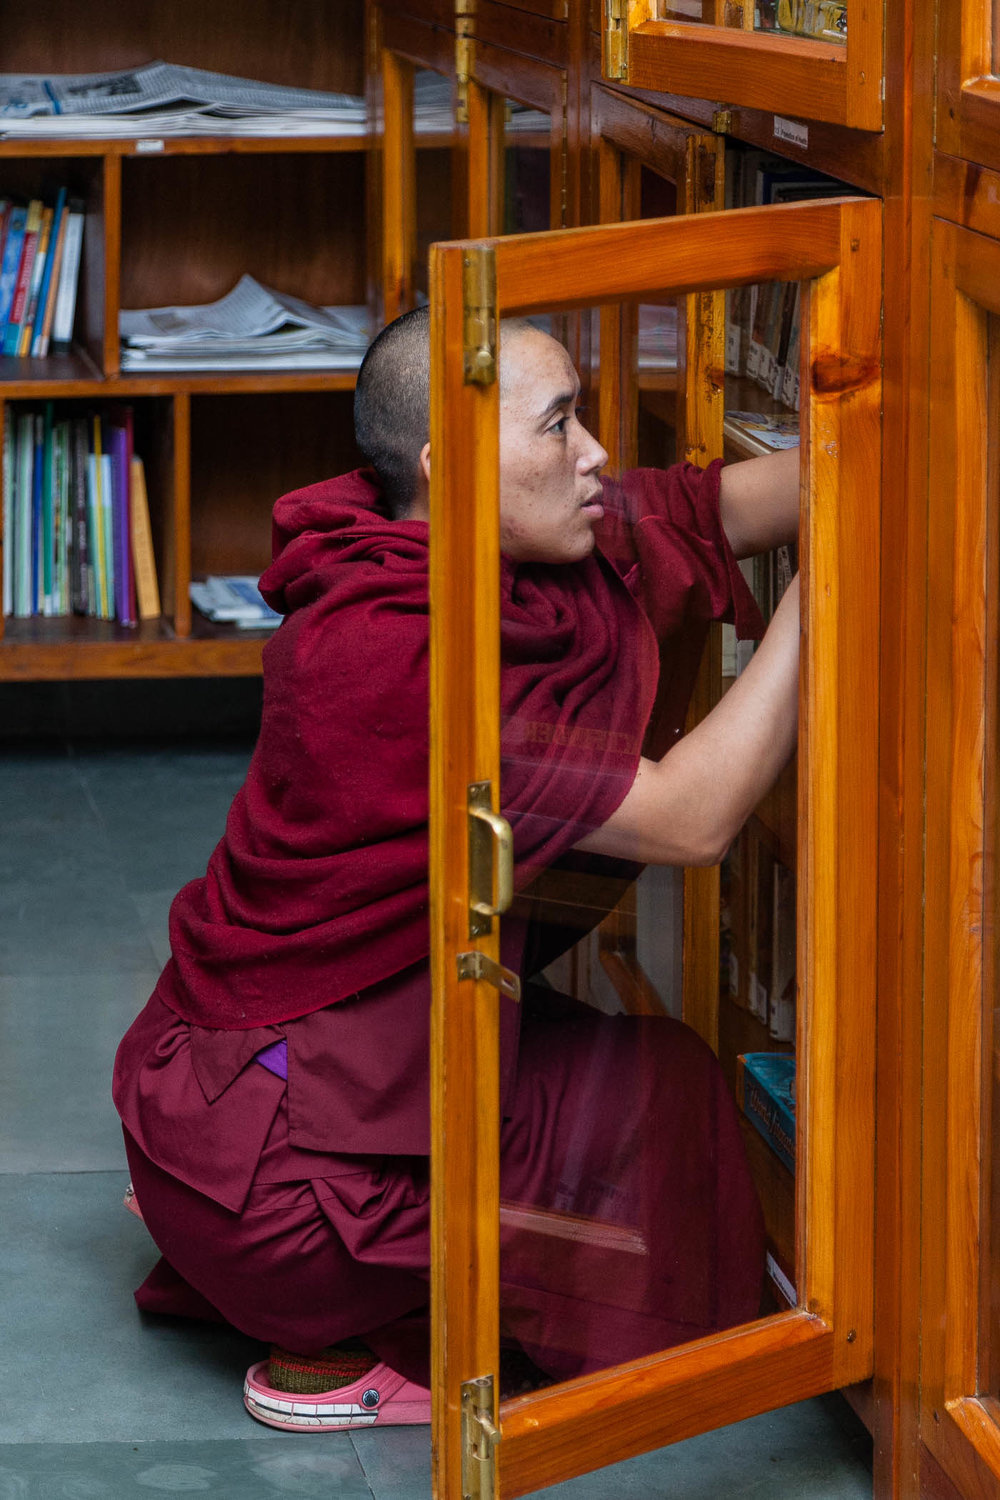 Searching the case for Tibetan texts